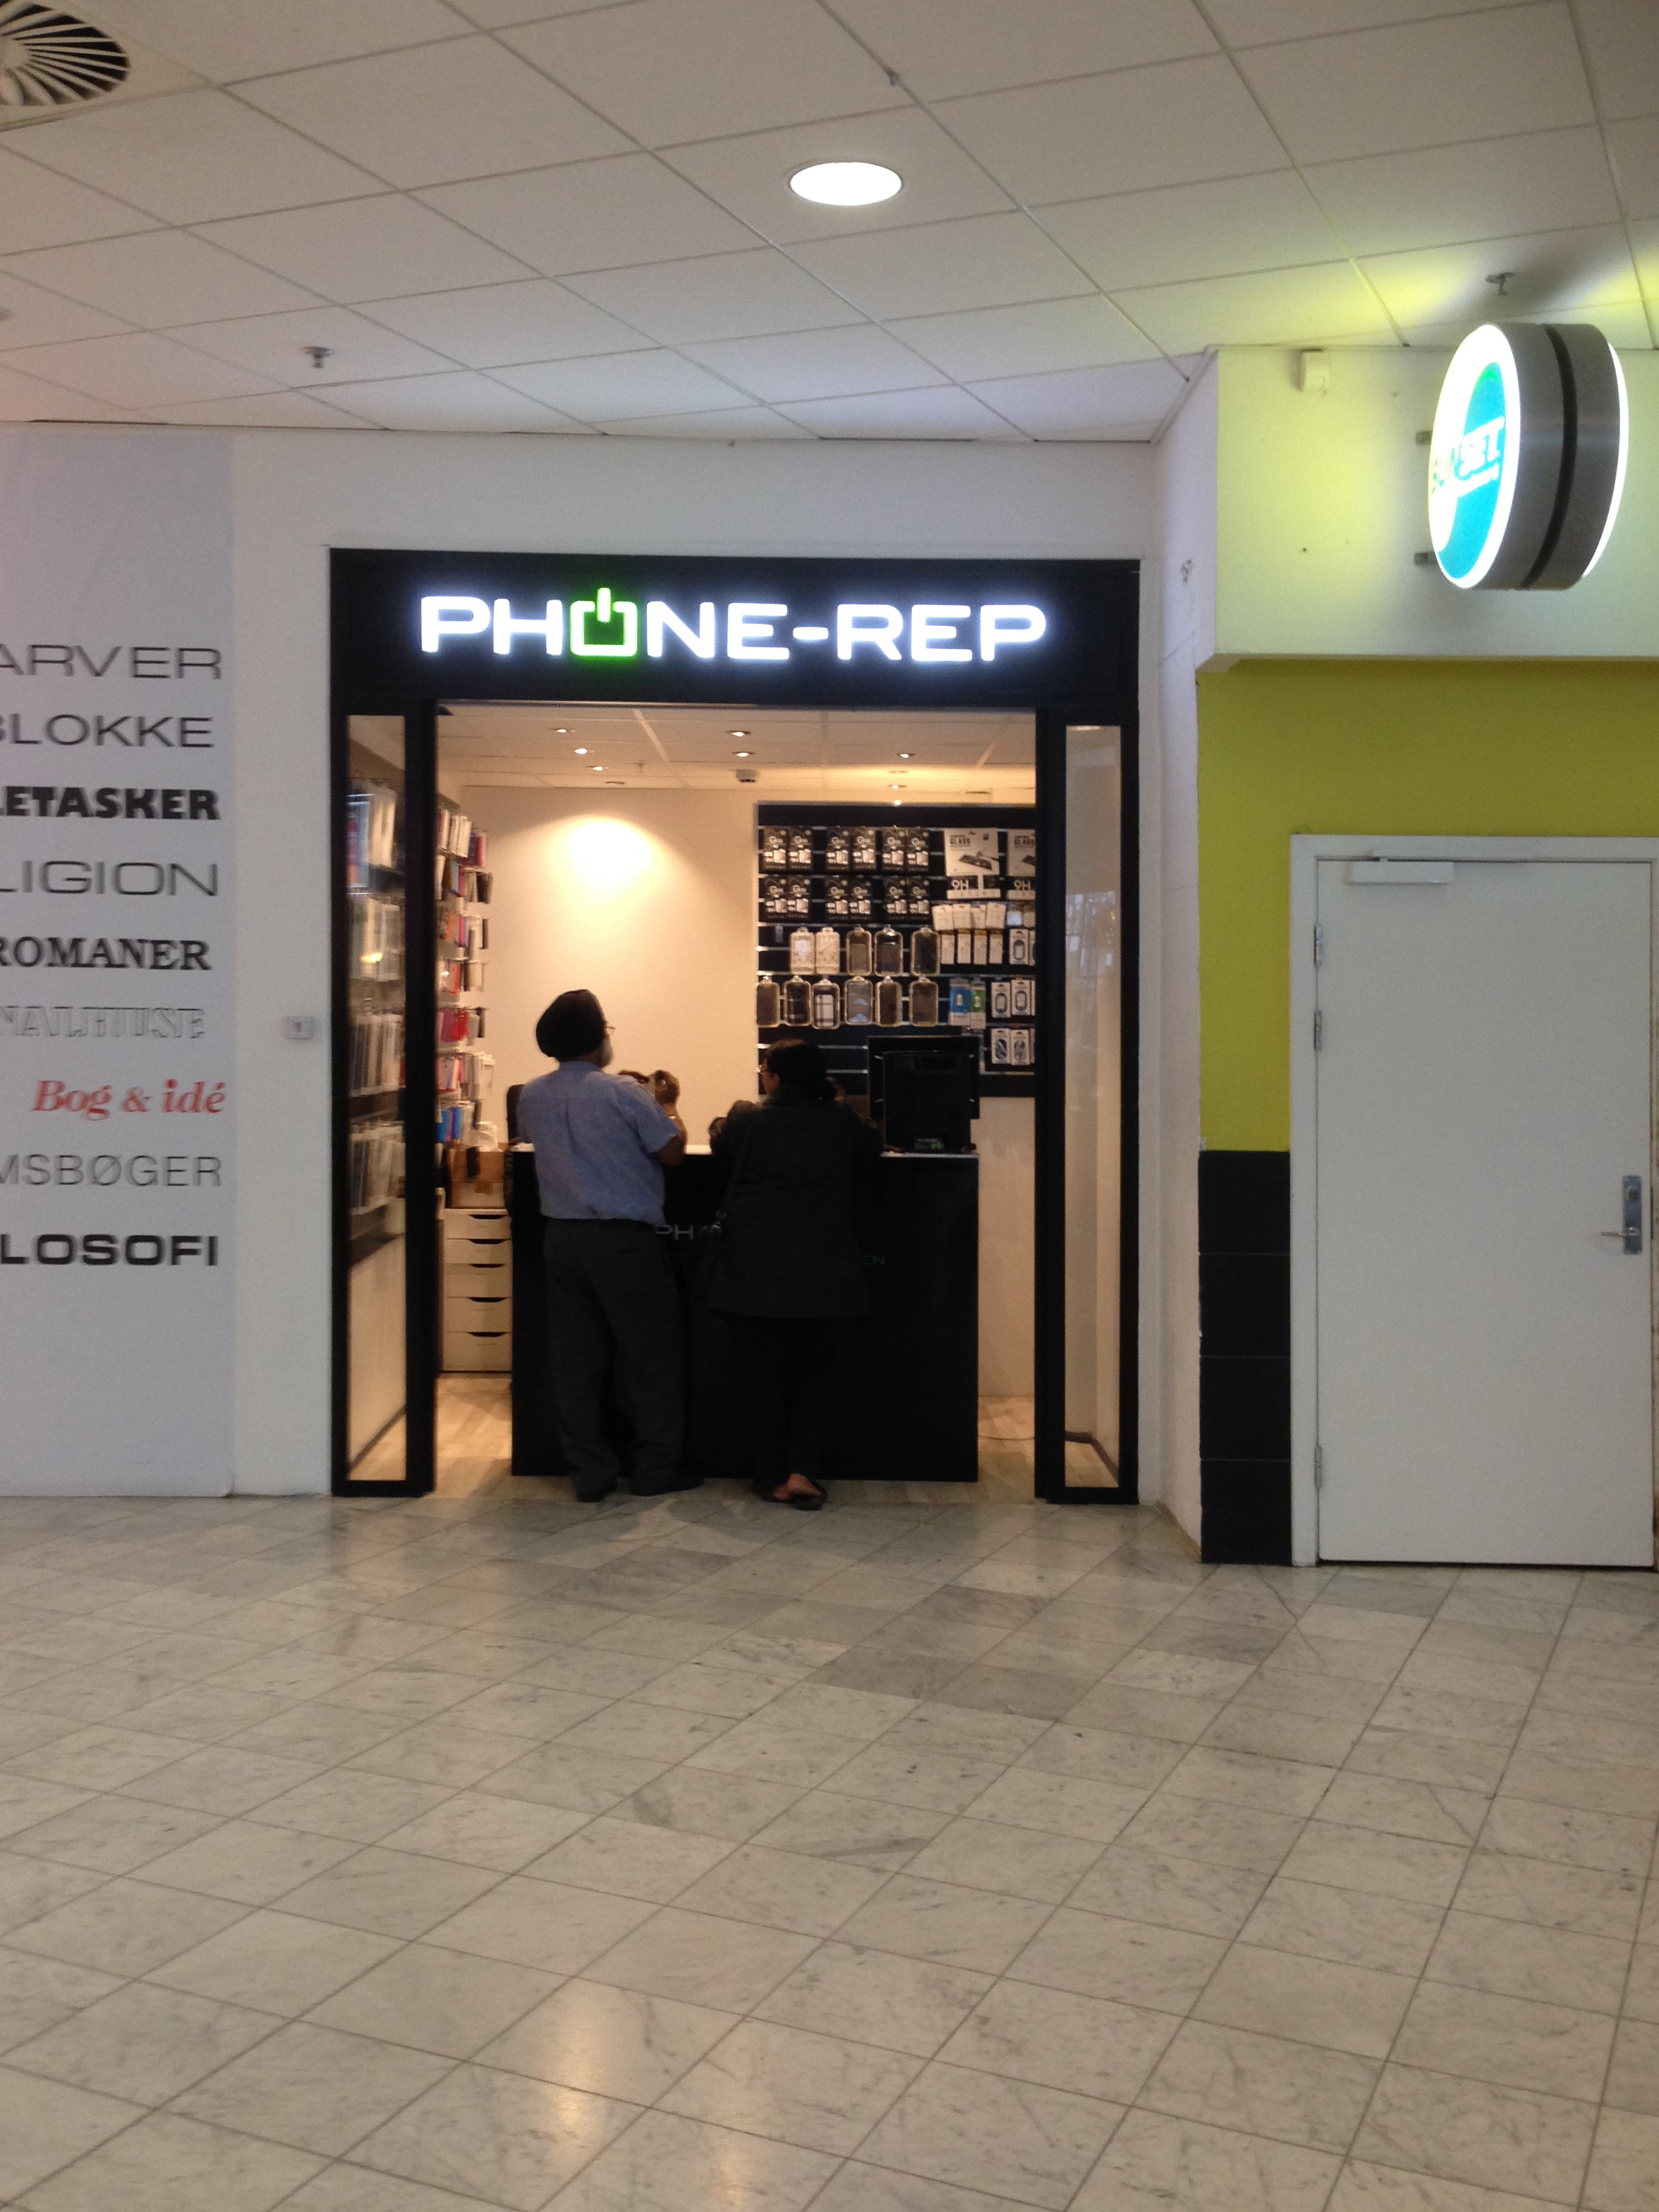 PhoneRep Fisketorvet